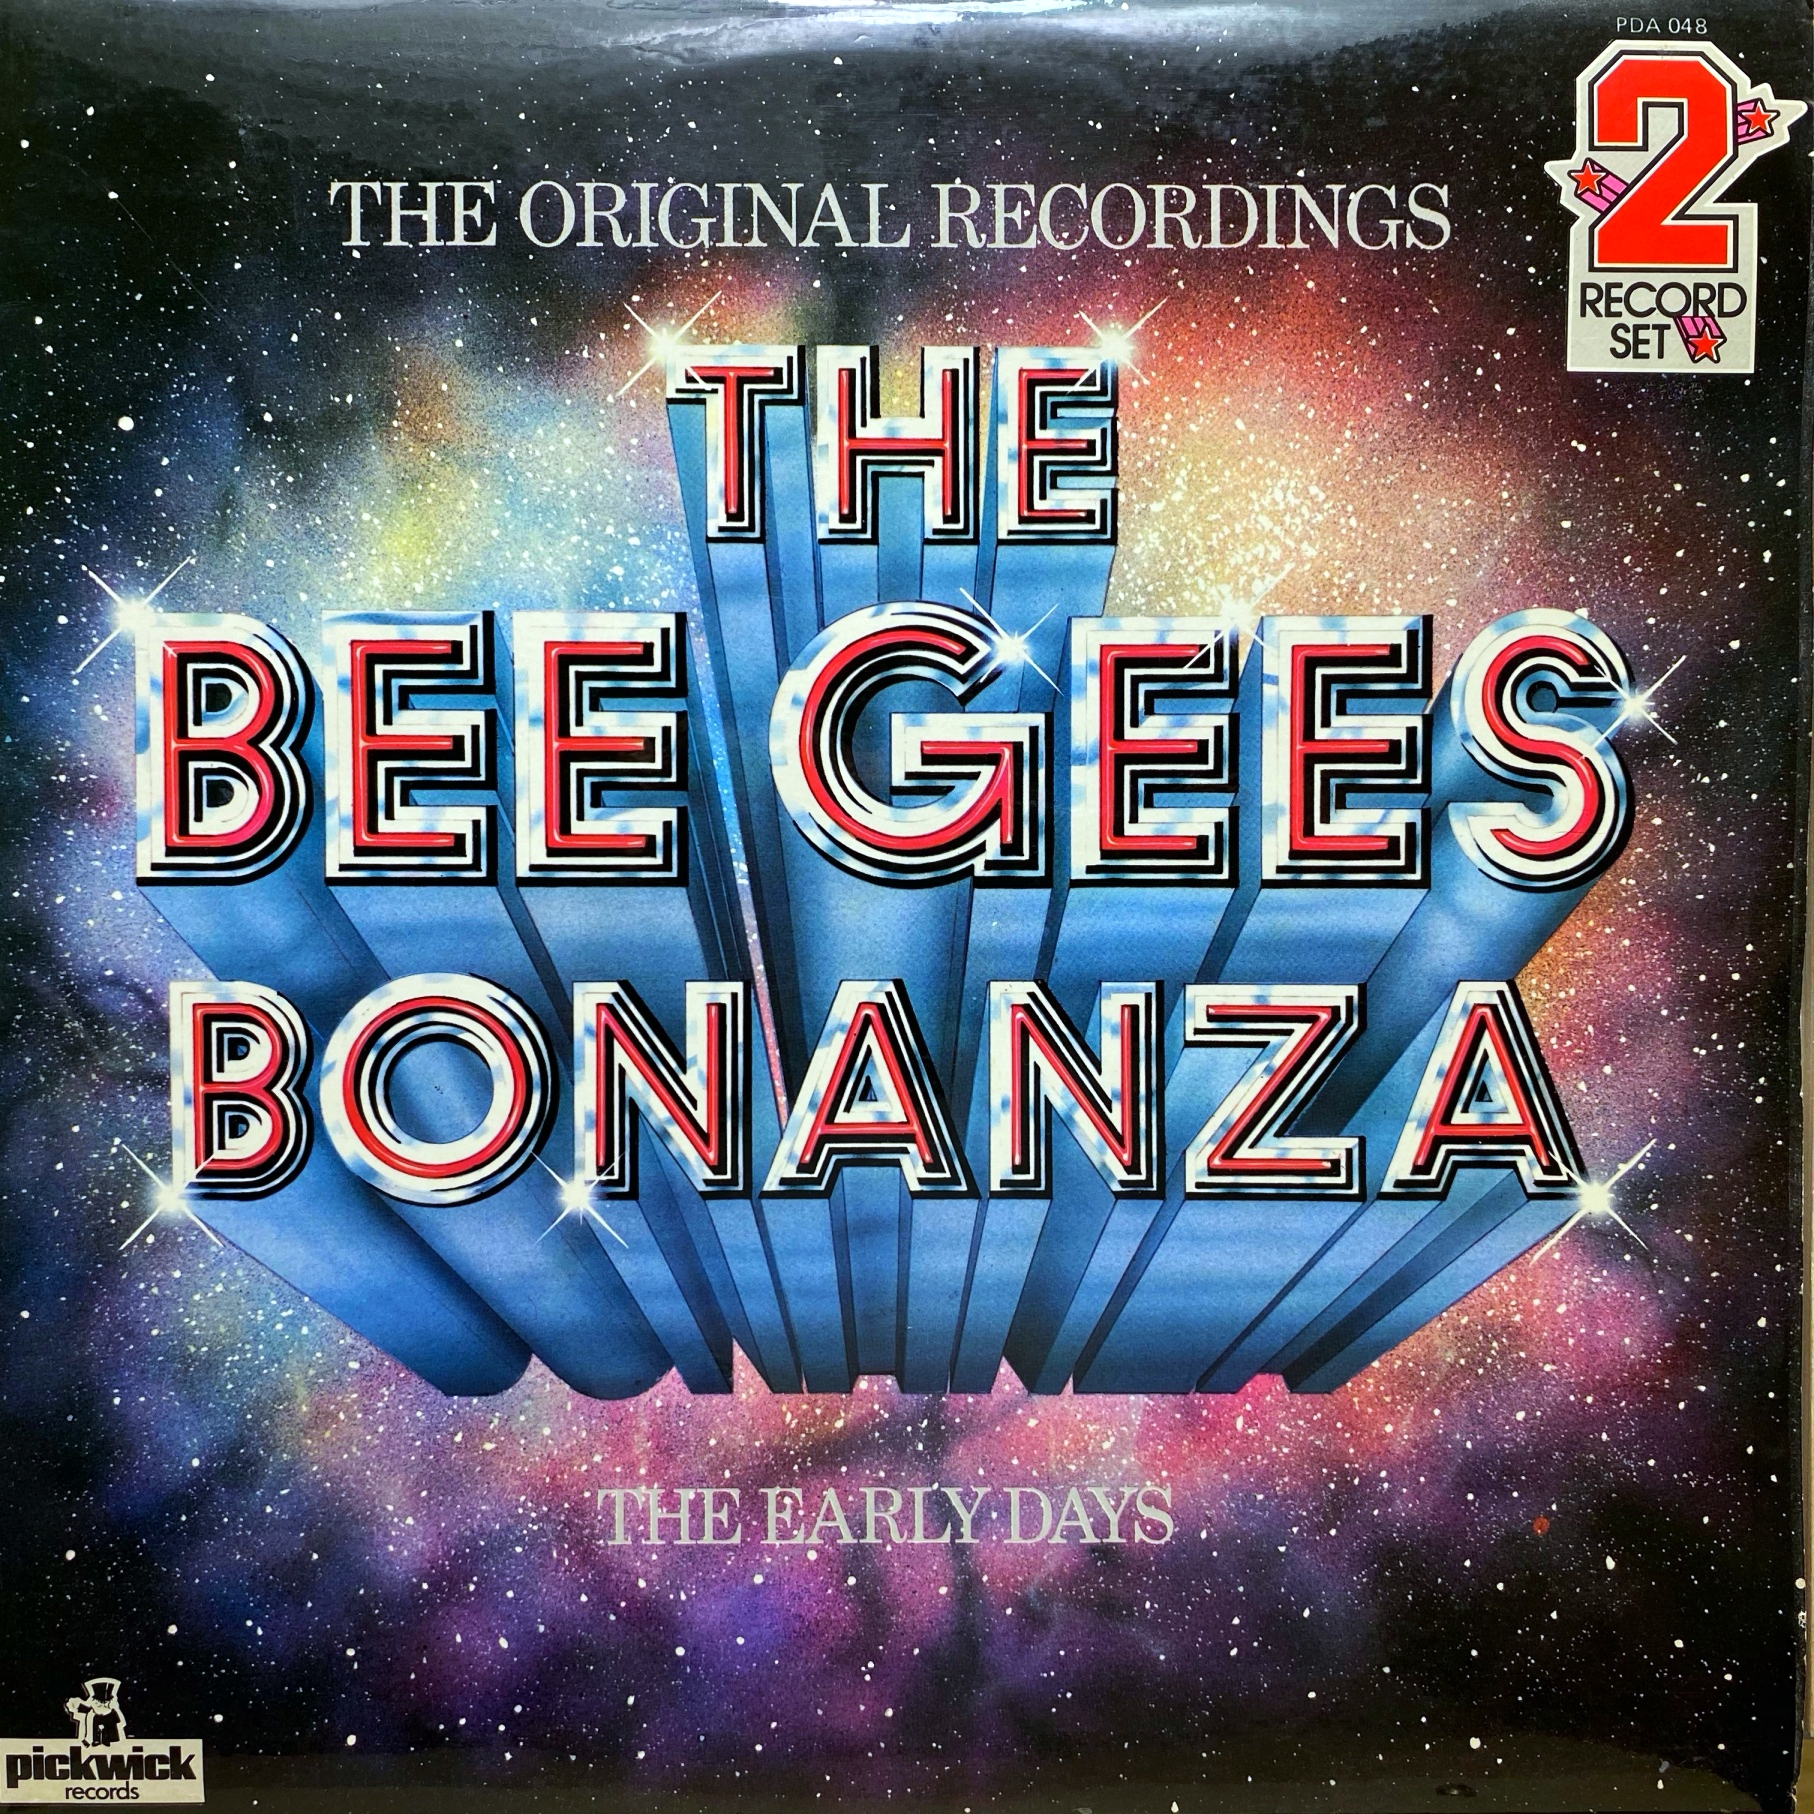 2xLP Bee Gees ‎– The Bee Gees Bonanza - The Early Days